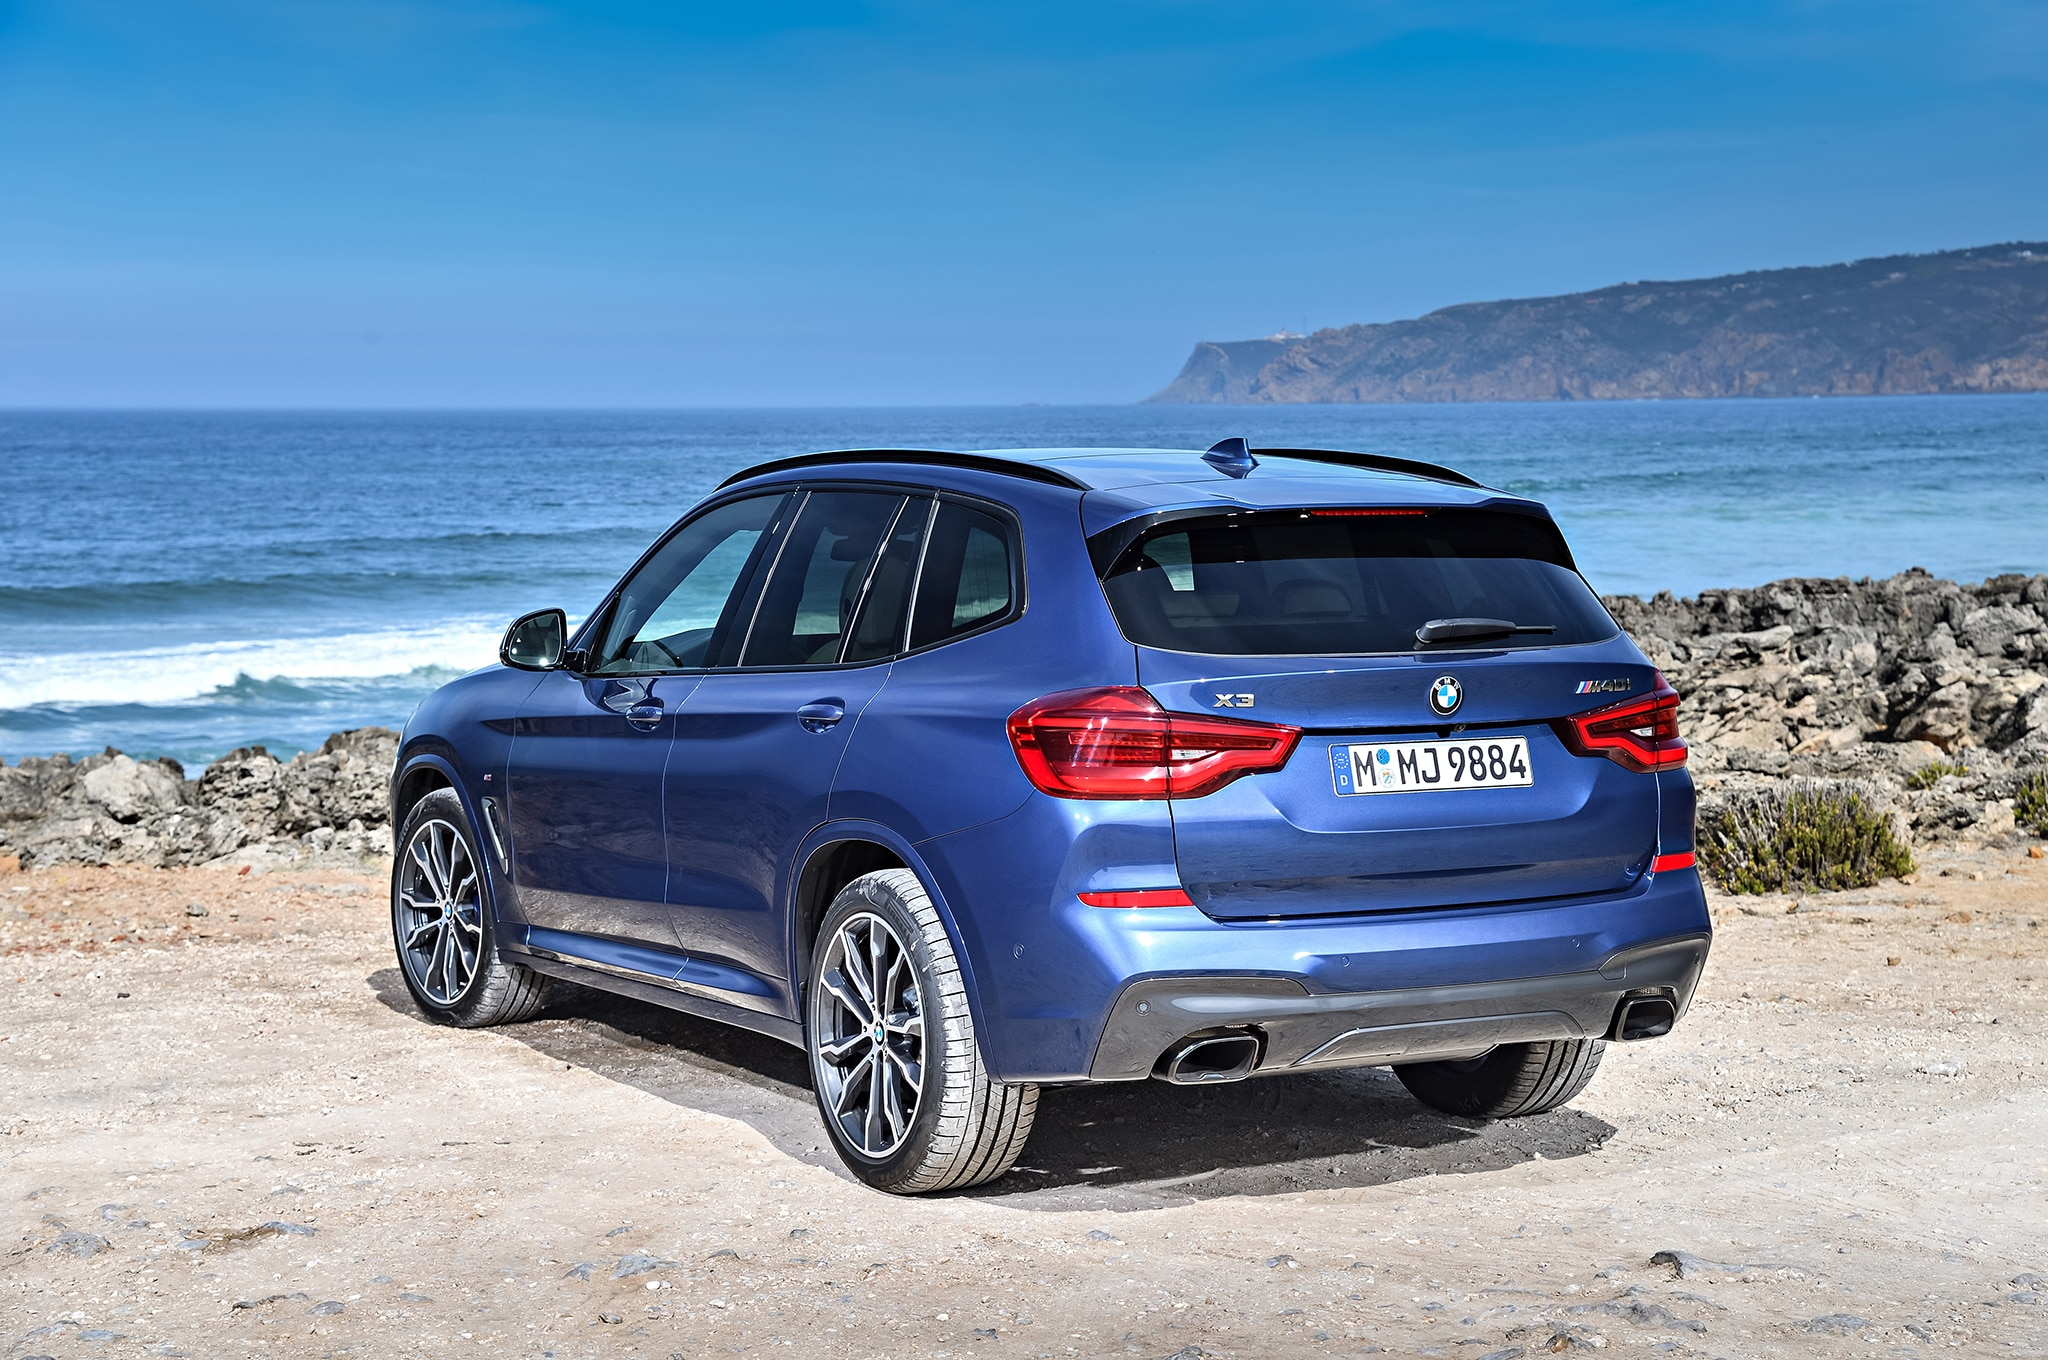 2018 bmw x3 almost ready for the big mall crawl automobile magazine. Black Bedroom Furniture Sets. Home Design Ideas